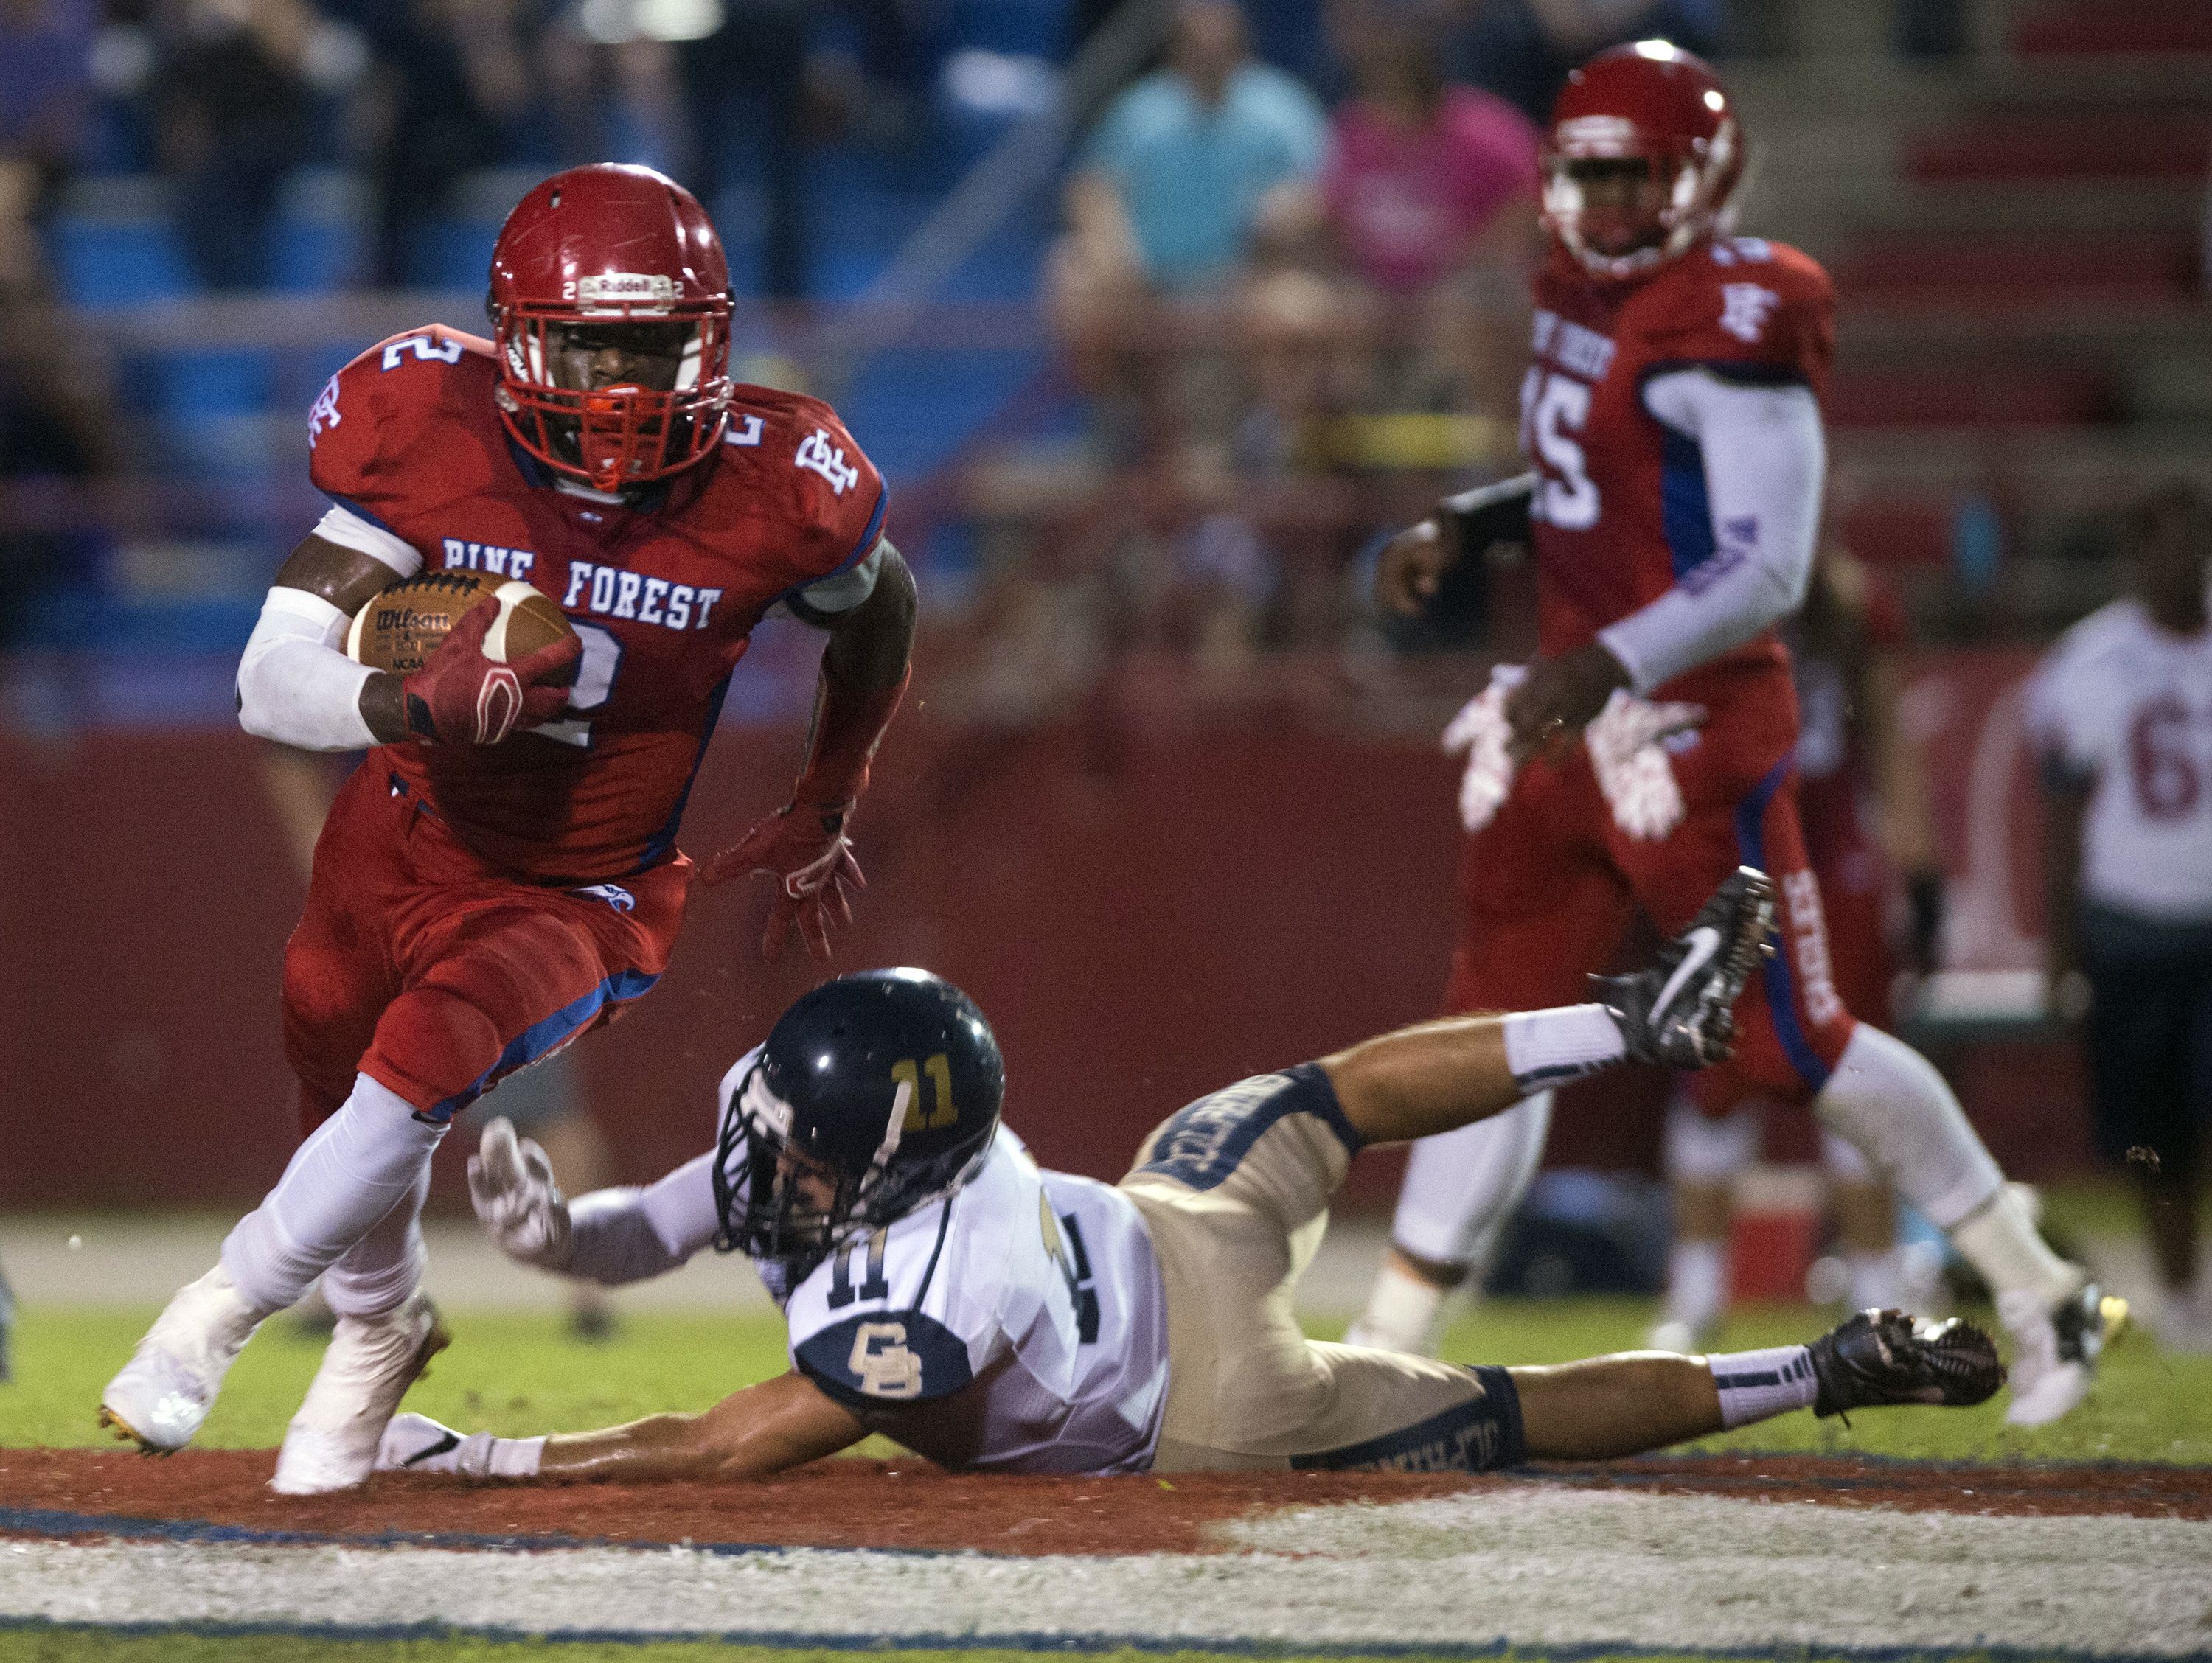 Pine Forest High running back Jaden Gardner, (No.2), slips away from the Gulf Breeze Line backer, Ben Dobry,(No. 11) during Friday night's home game against the Dolphins.